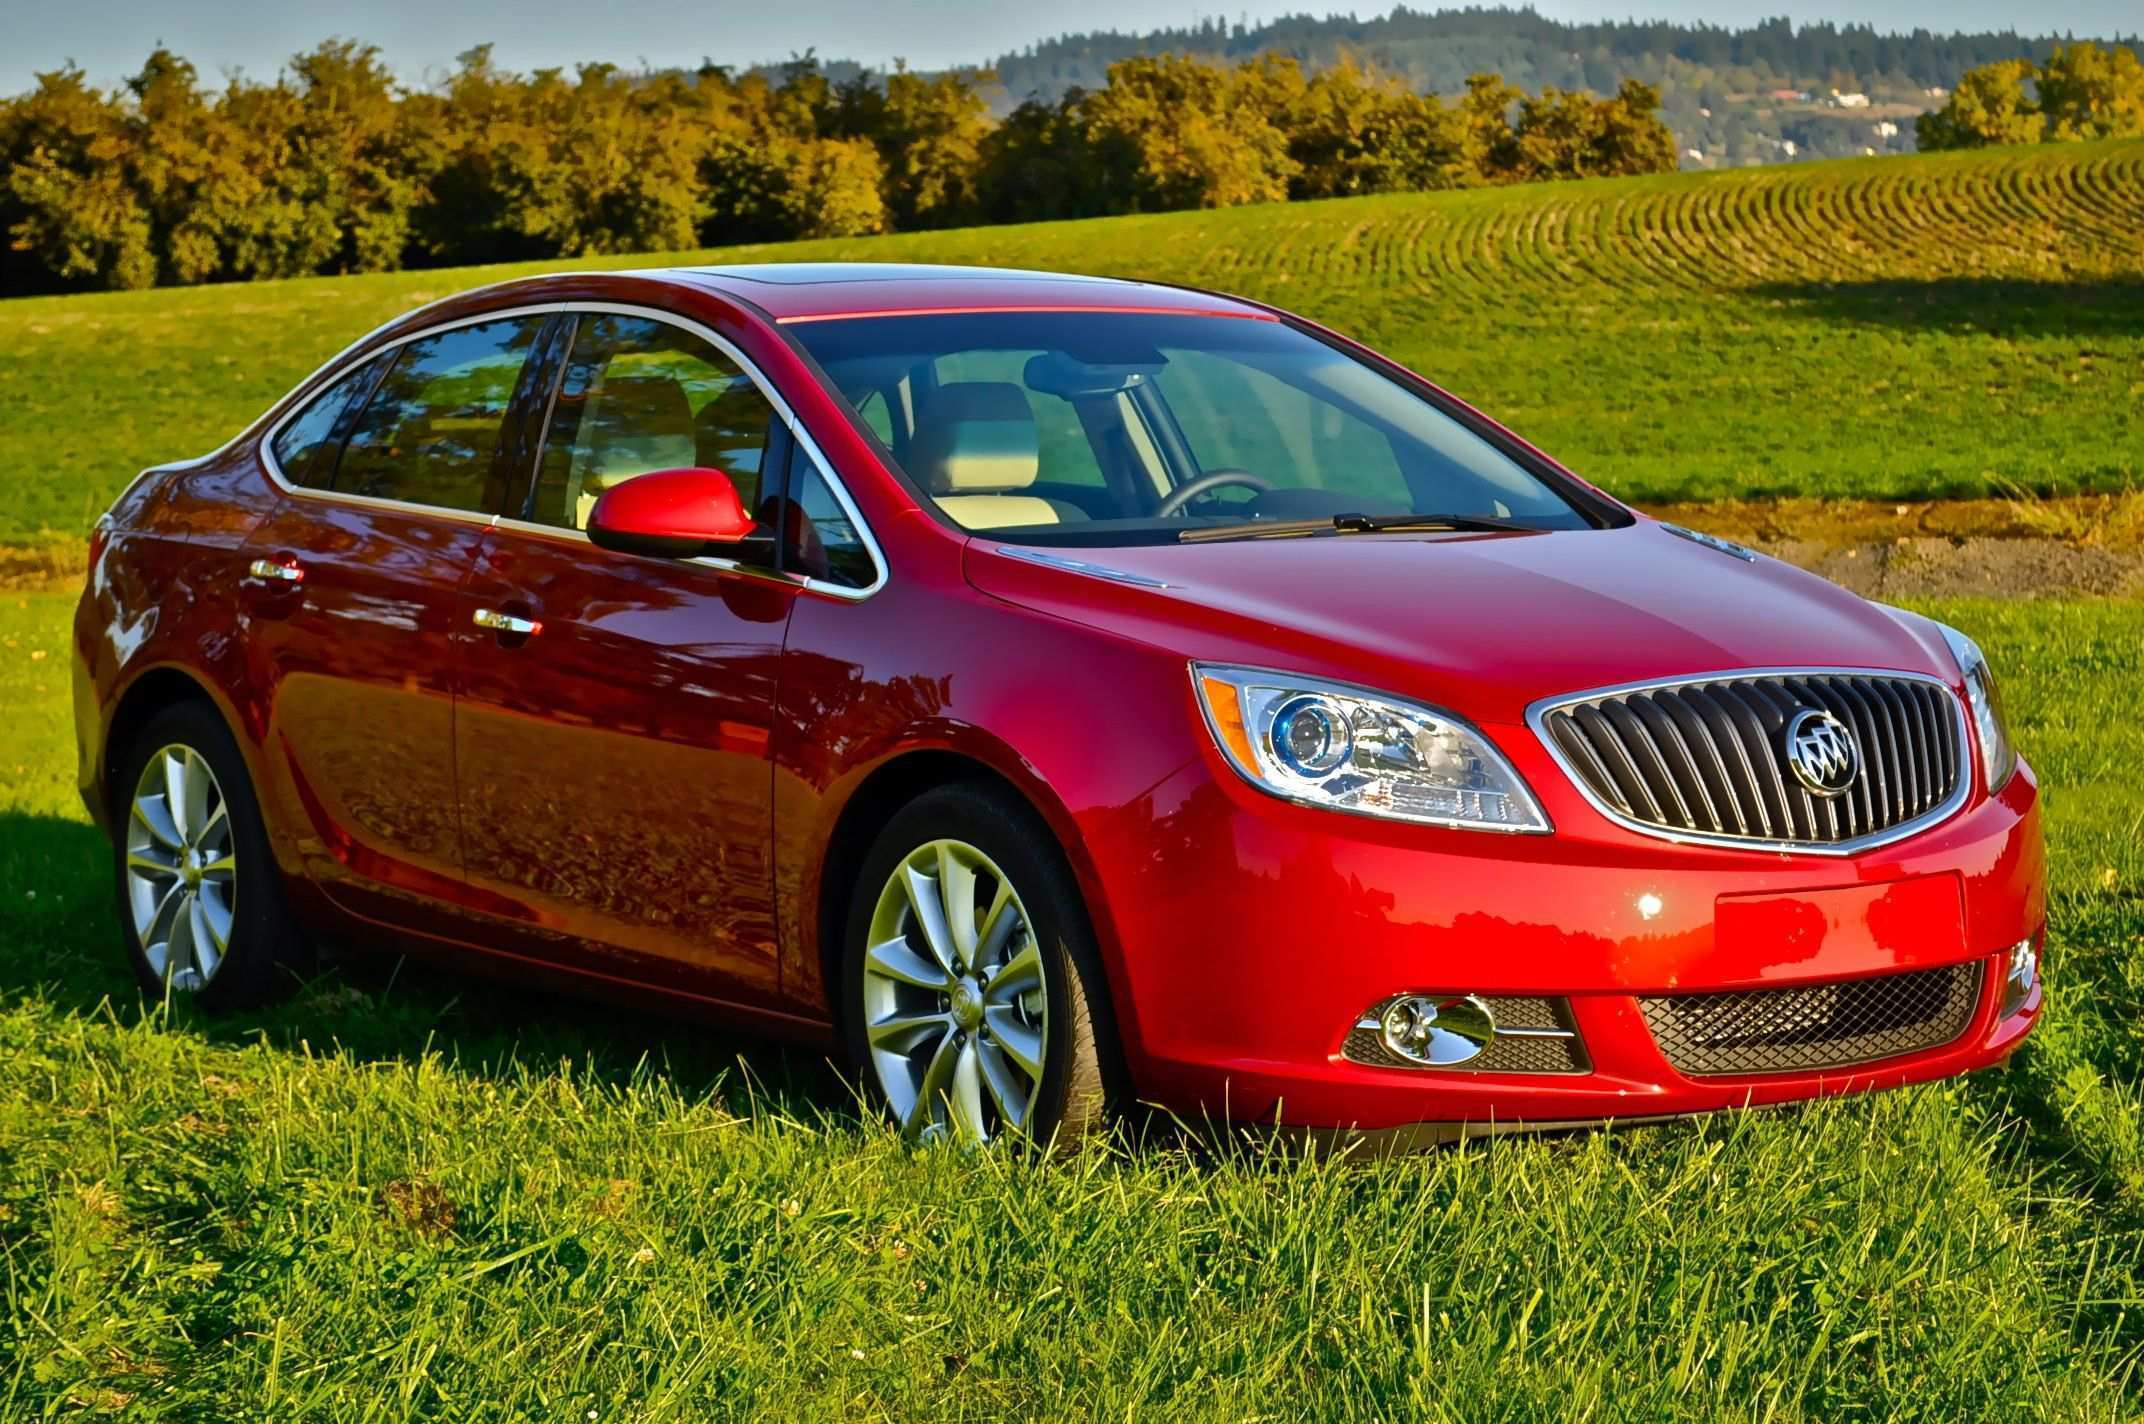 72 New 2020 Buick Verano Spy Reviews by 2020 Buick Verano Spy